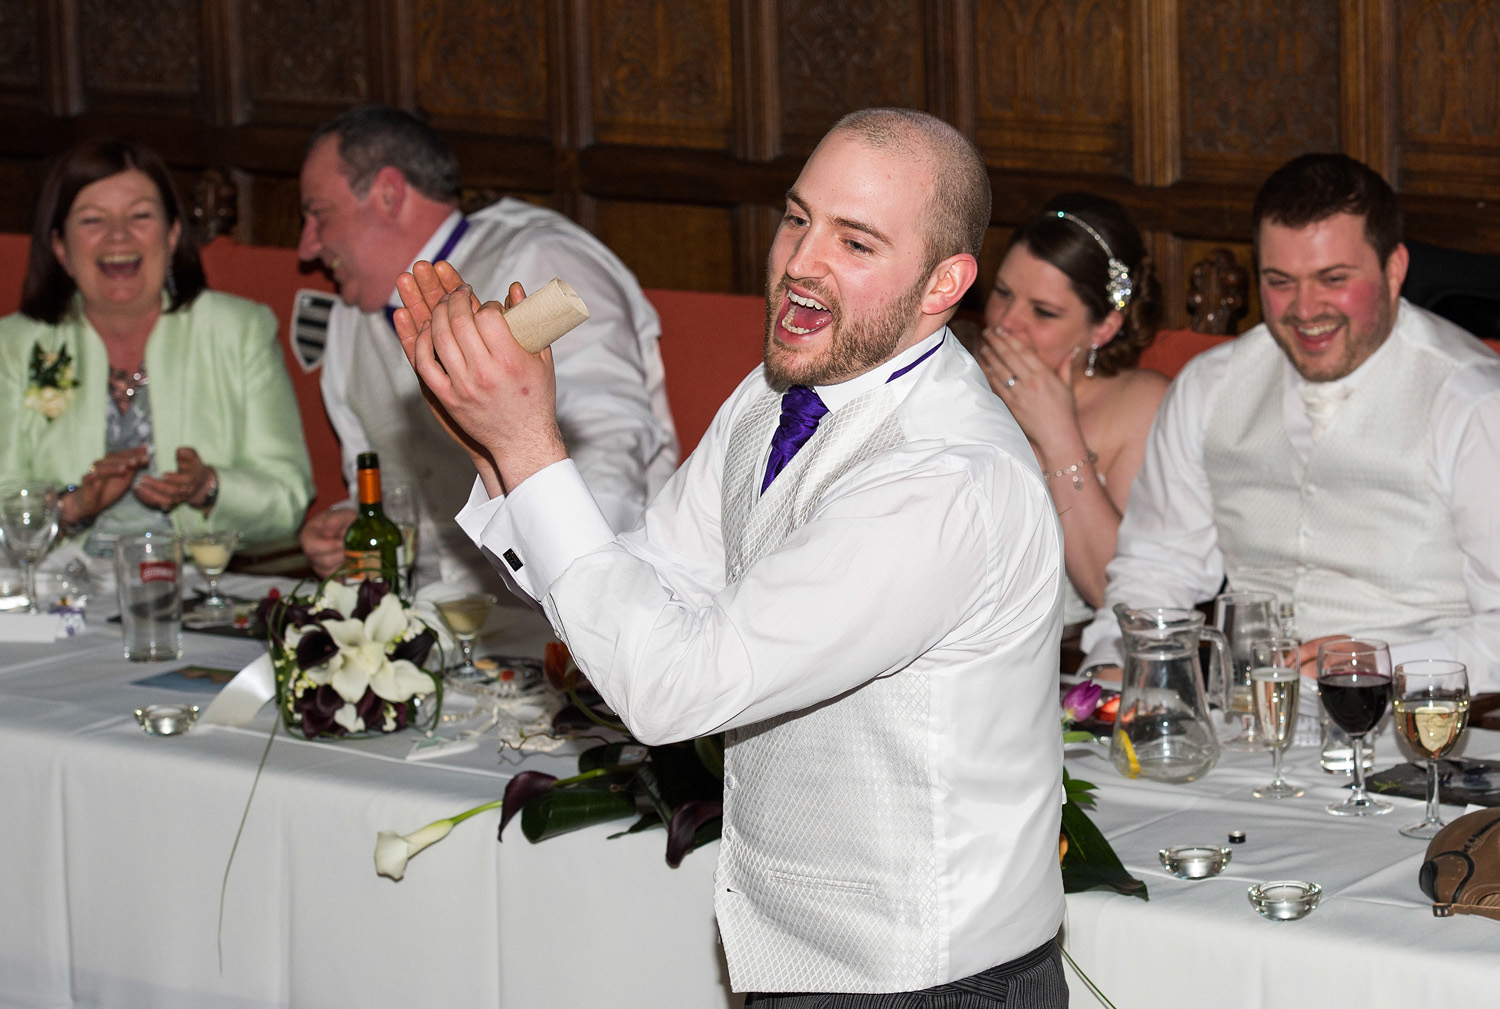 A wedding reception at Hoghton Tower ne